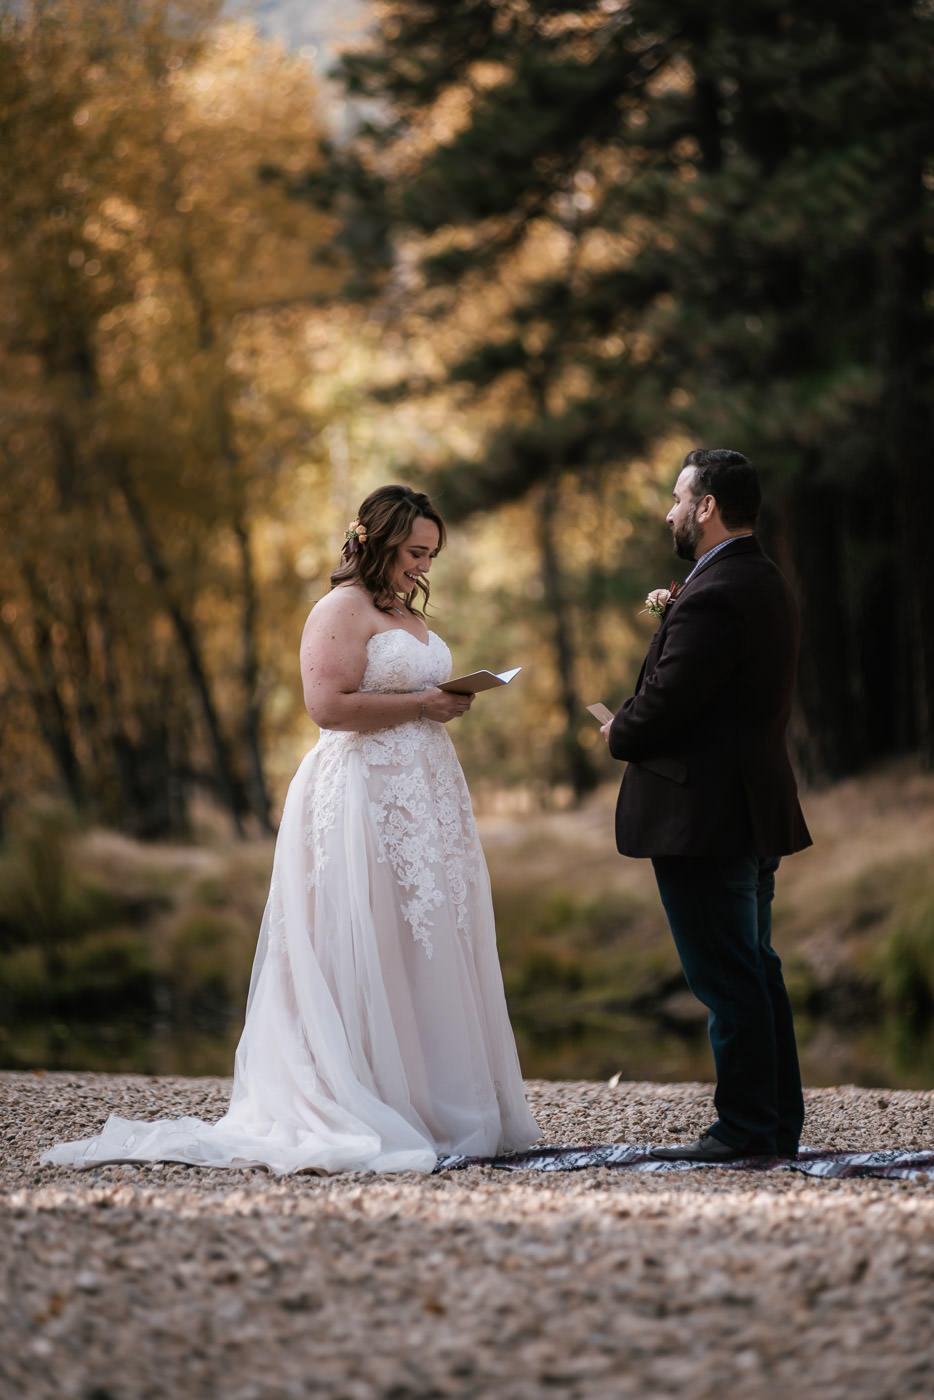 cathedral-beach-elopement-ceremony-yosemite-9.jpg